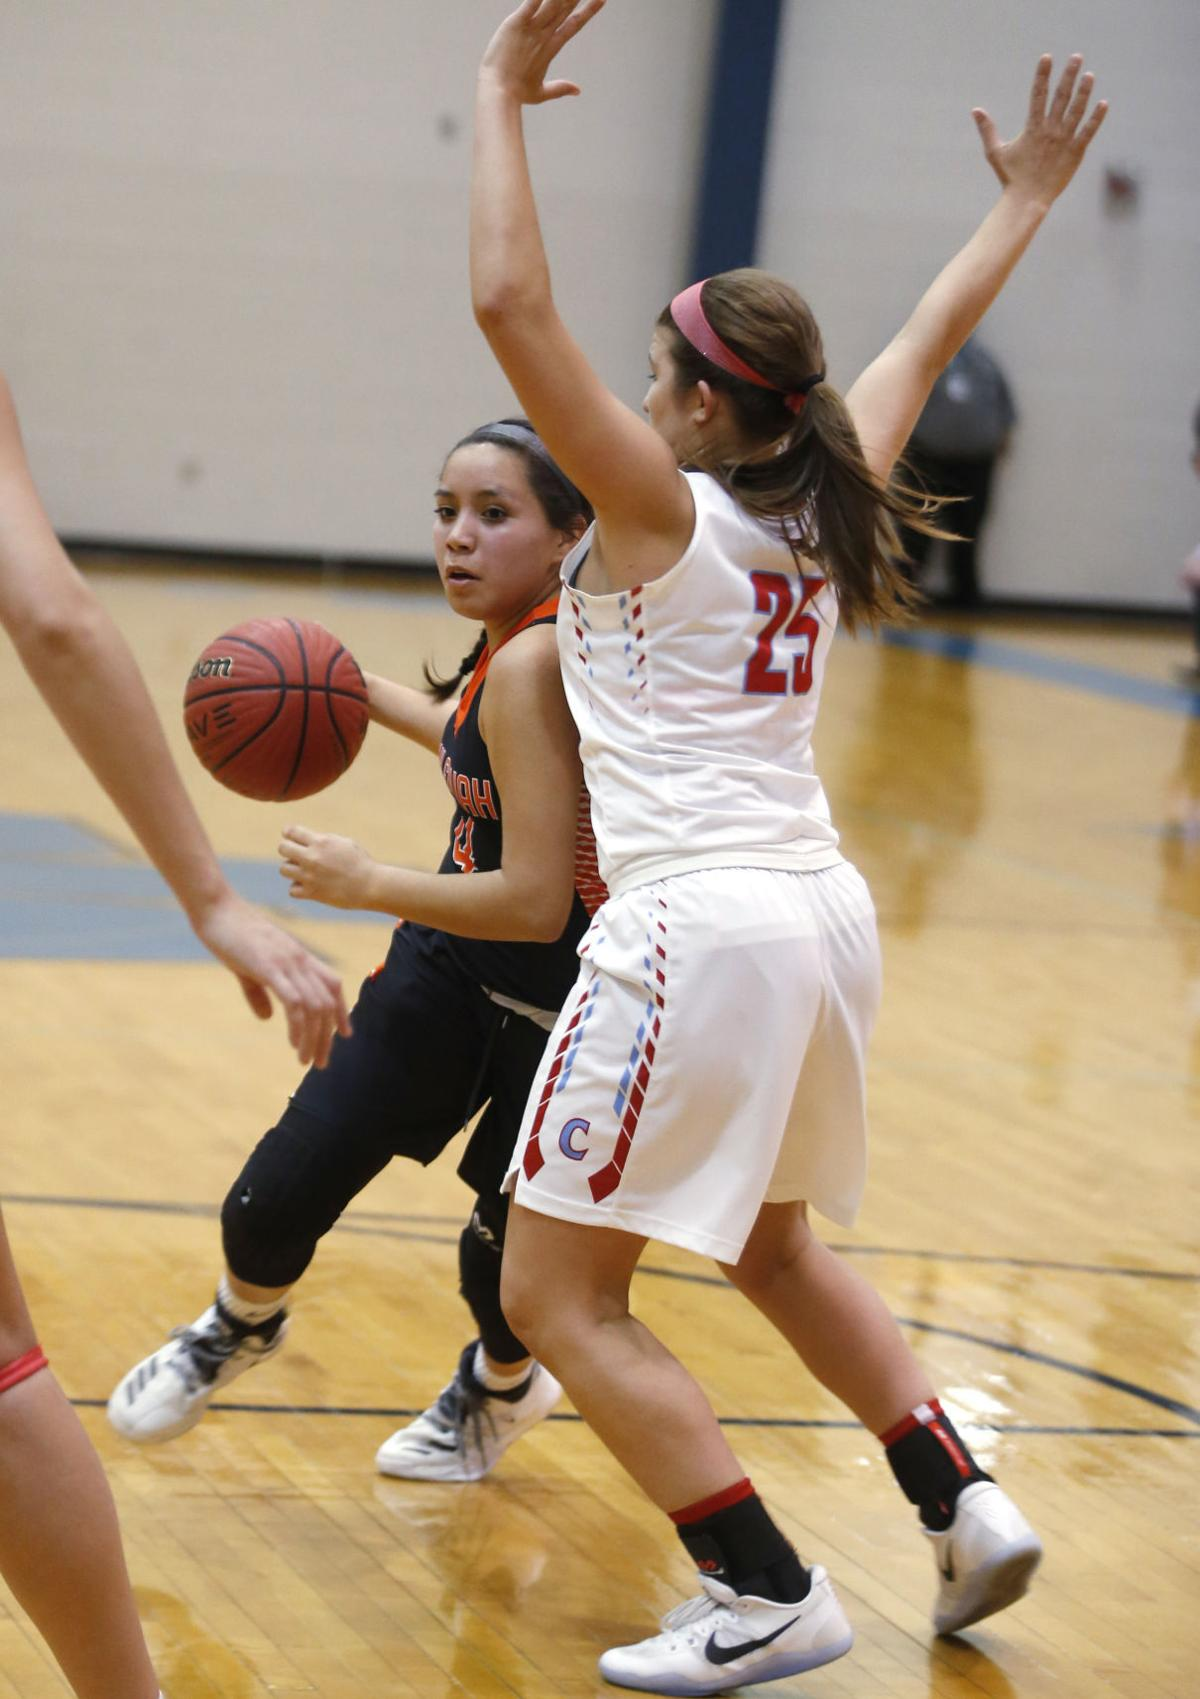 Collinsville vs Tahlequah Girls Basketball